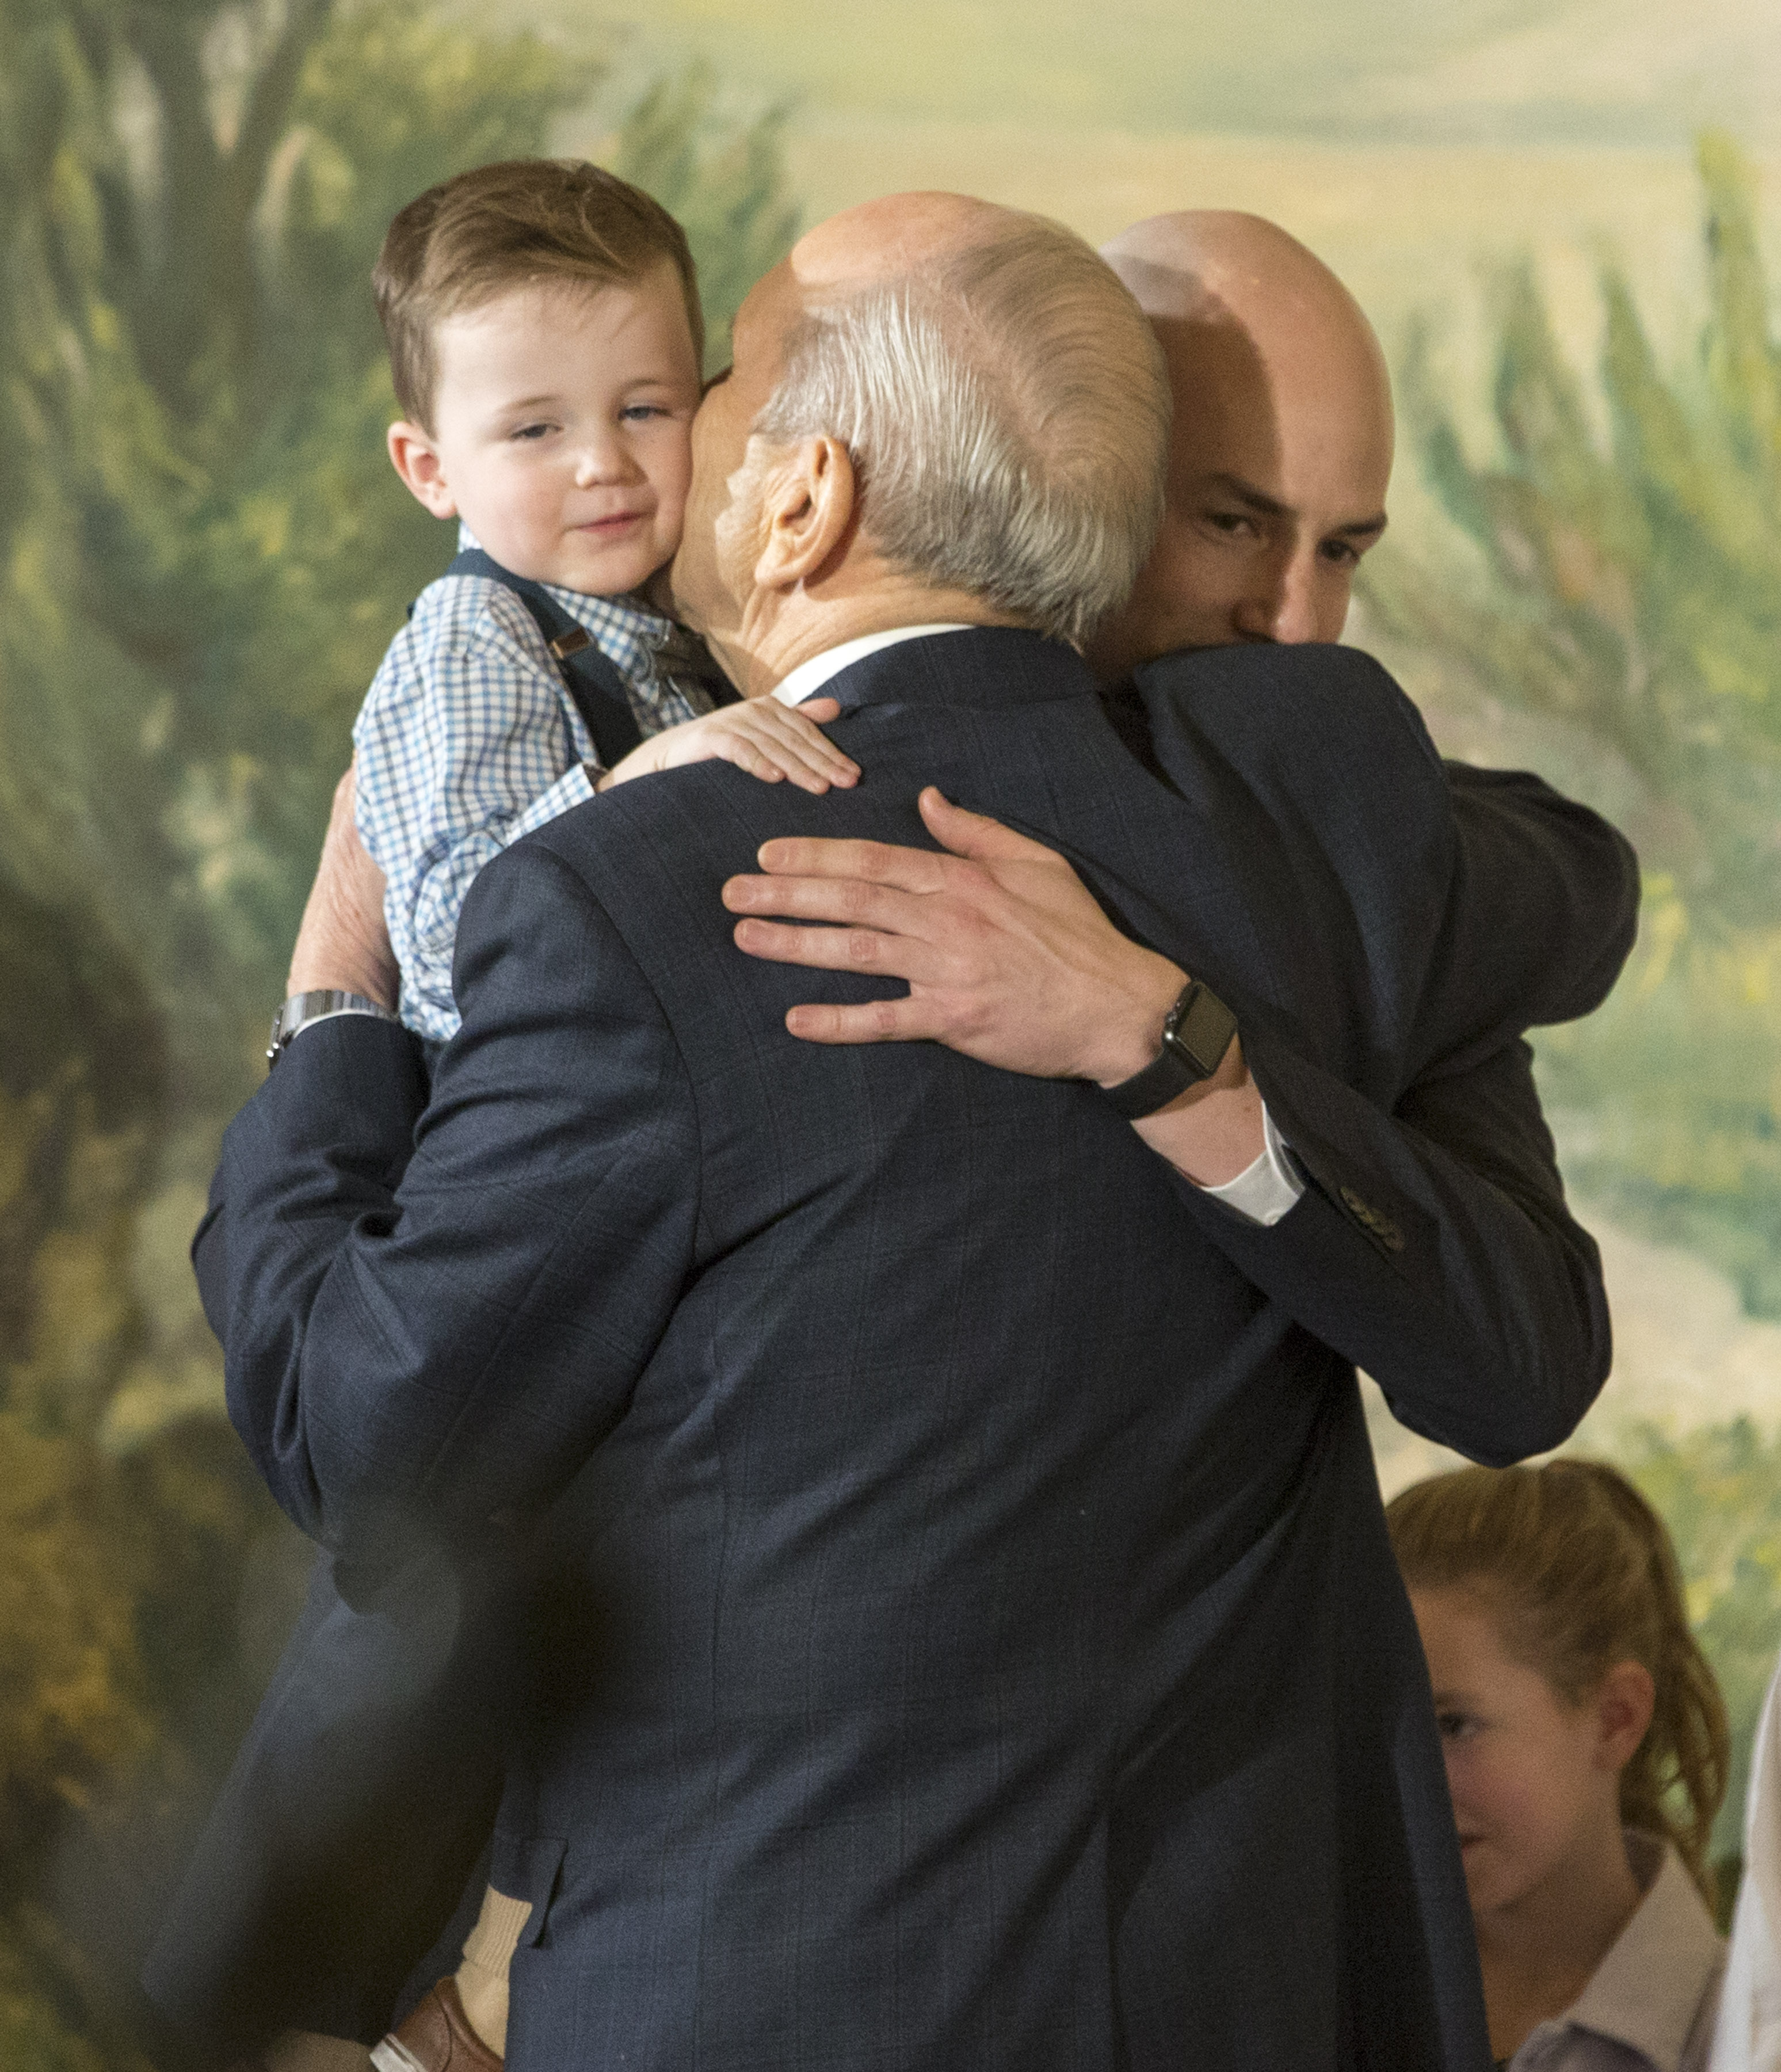 President Russell M. Nelson, 17th President of The Church of Jesus Christ of Latter-day Saints, receives hugs from family members after he and his councilors, President Dallin H. Oaks, first counselor, and President Henry B. Eyring, second counselor, held a press conference at the Church Office Building in Salt Lake City Utah on Tuesday, Jan. 16, 2018.